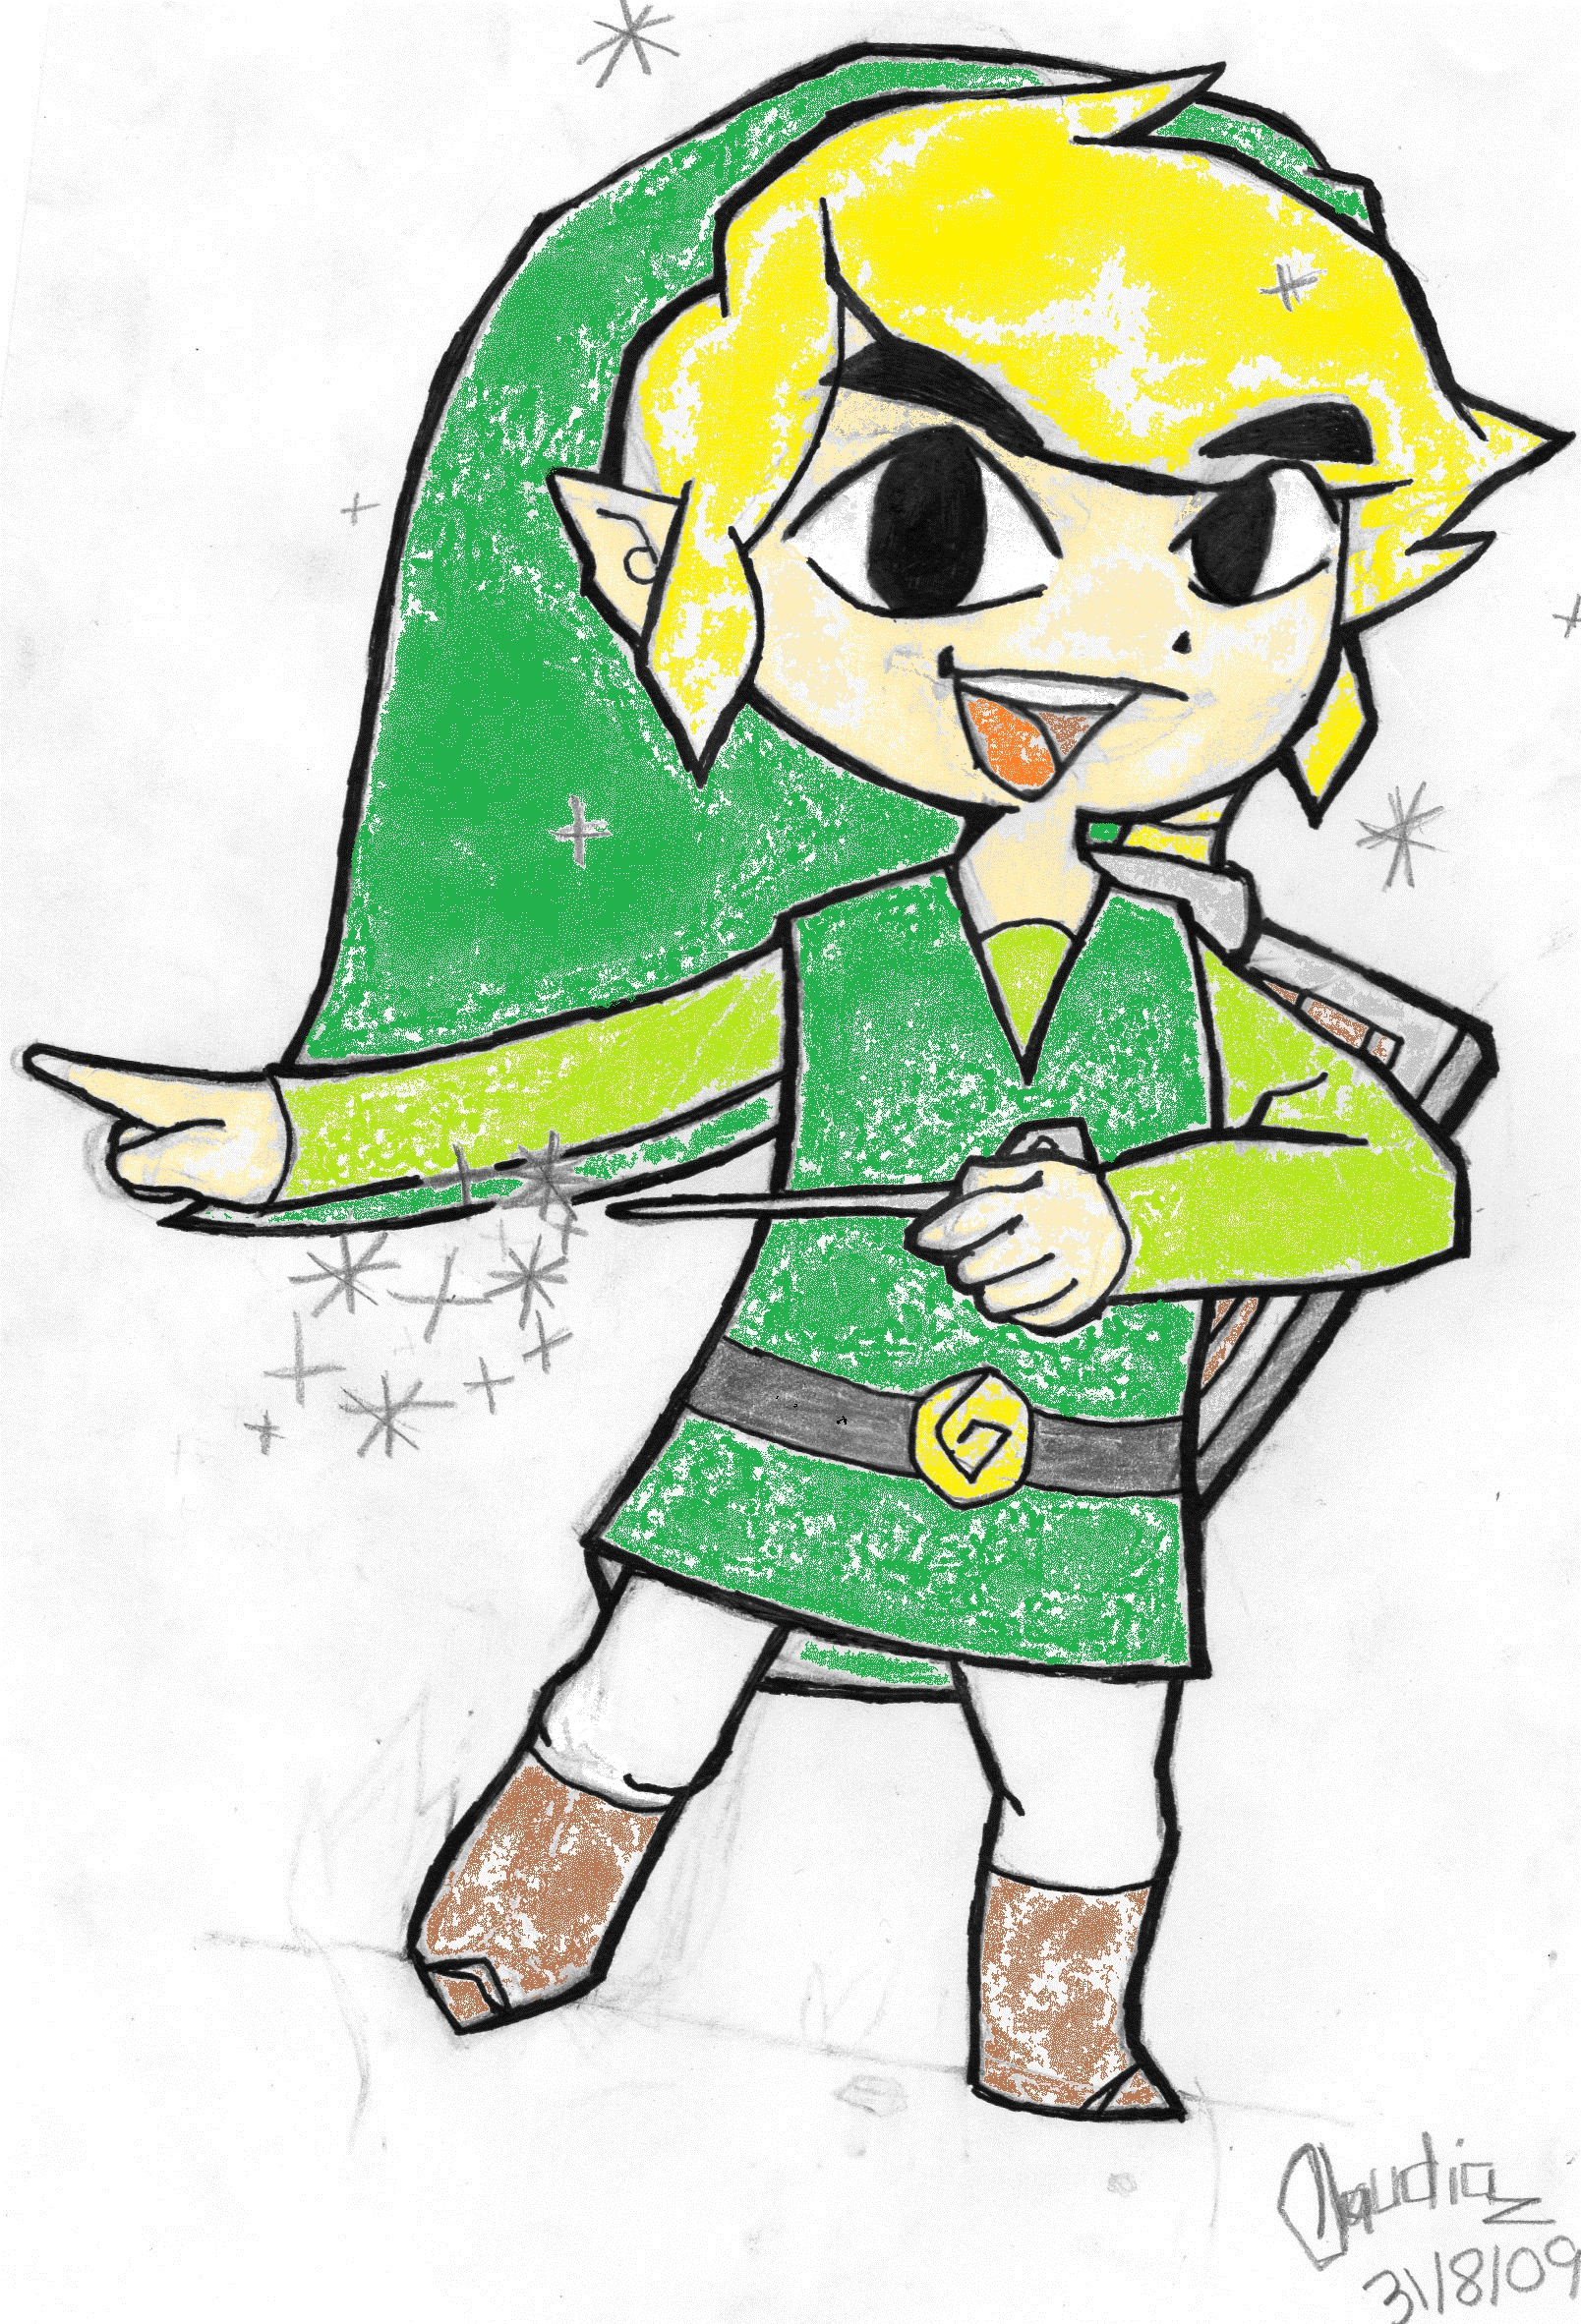 TLoZ:The Wind Waker-Toon Link by diaxa on DeviantArt